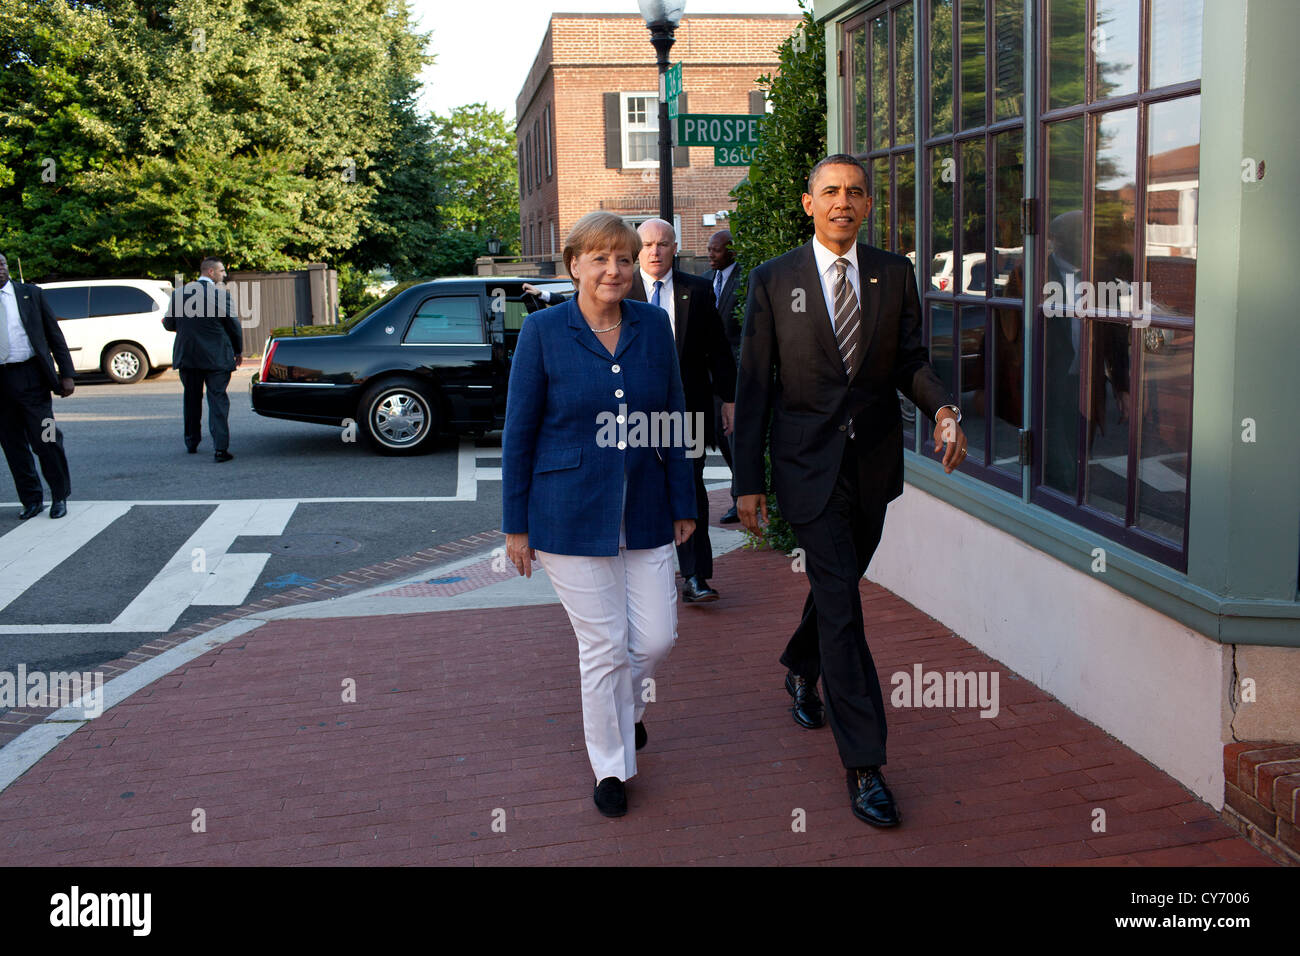 US President Barack Obama and Chancellor Angela Merkel of Germany arrive for dinner at the 1789 Restaurant June - Stock Image